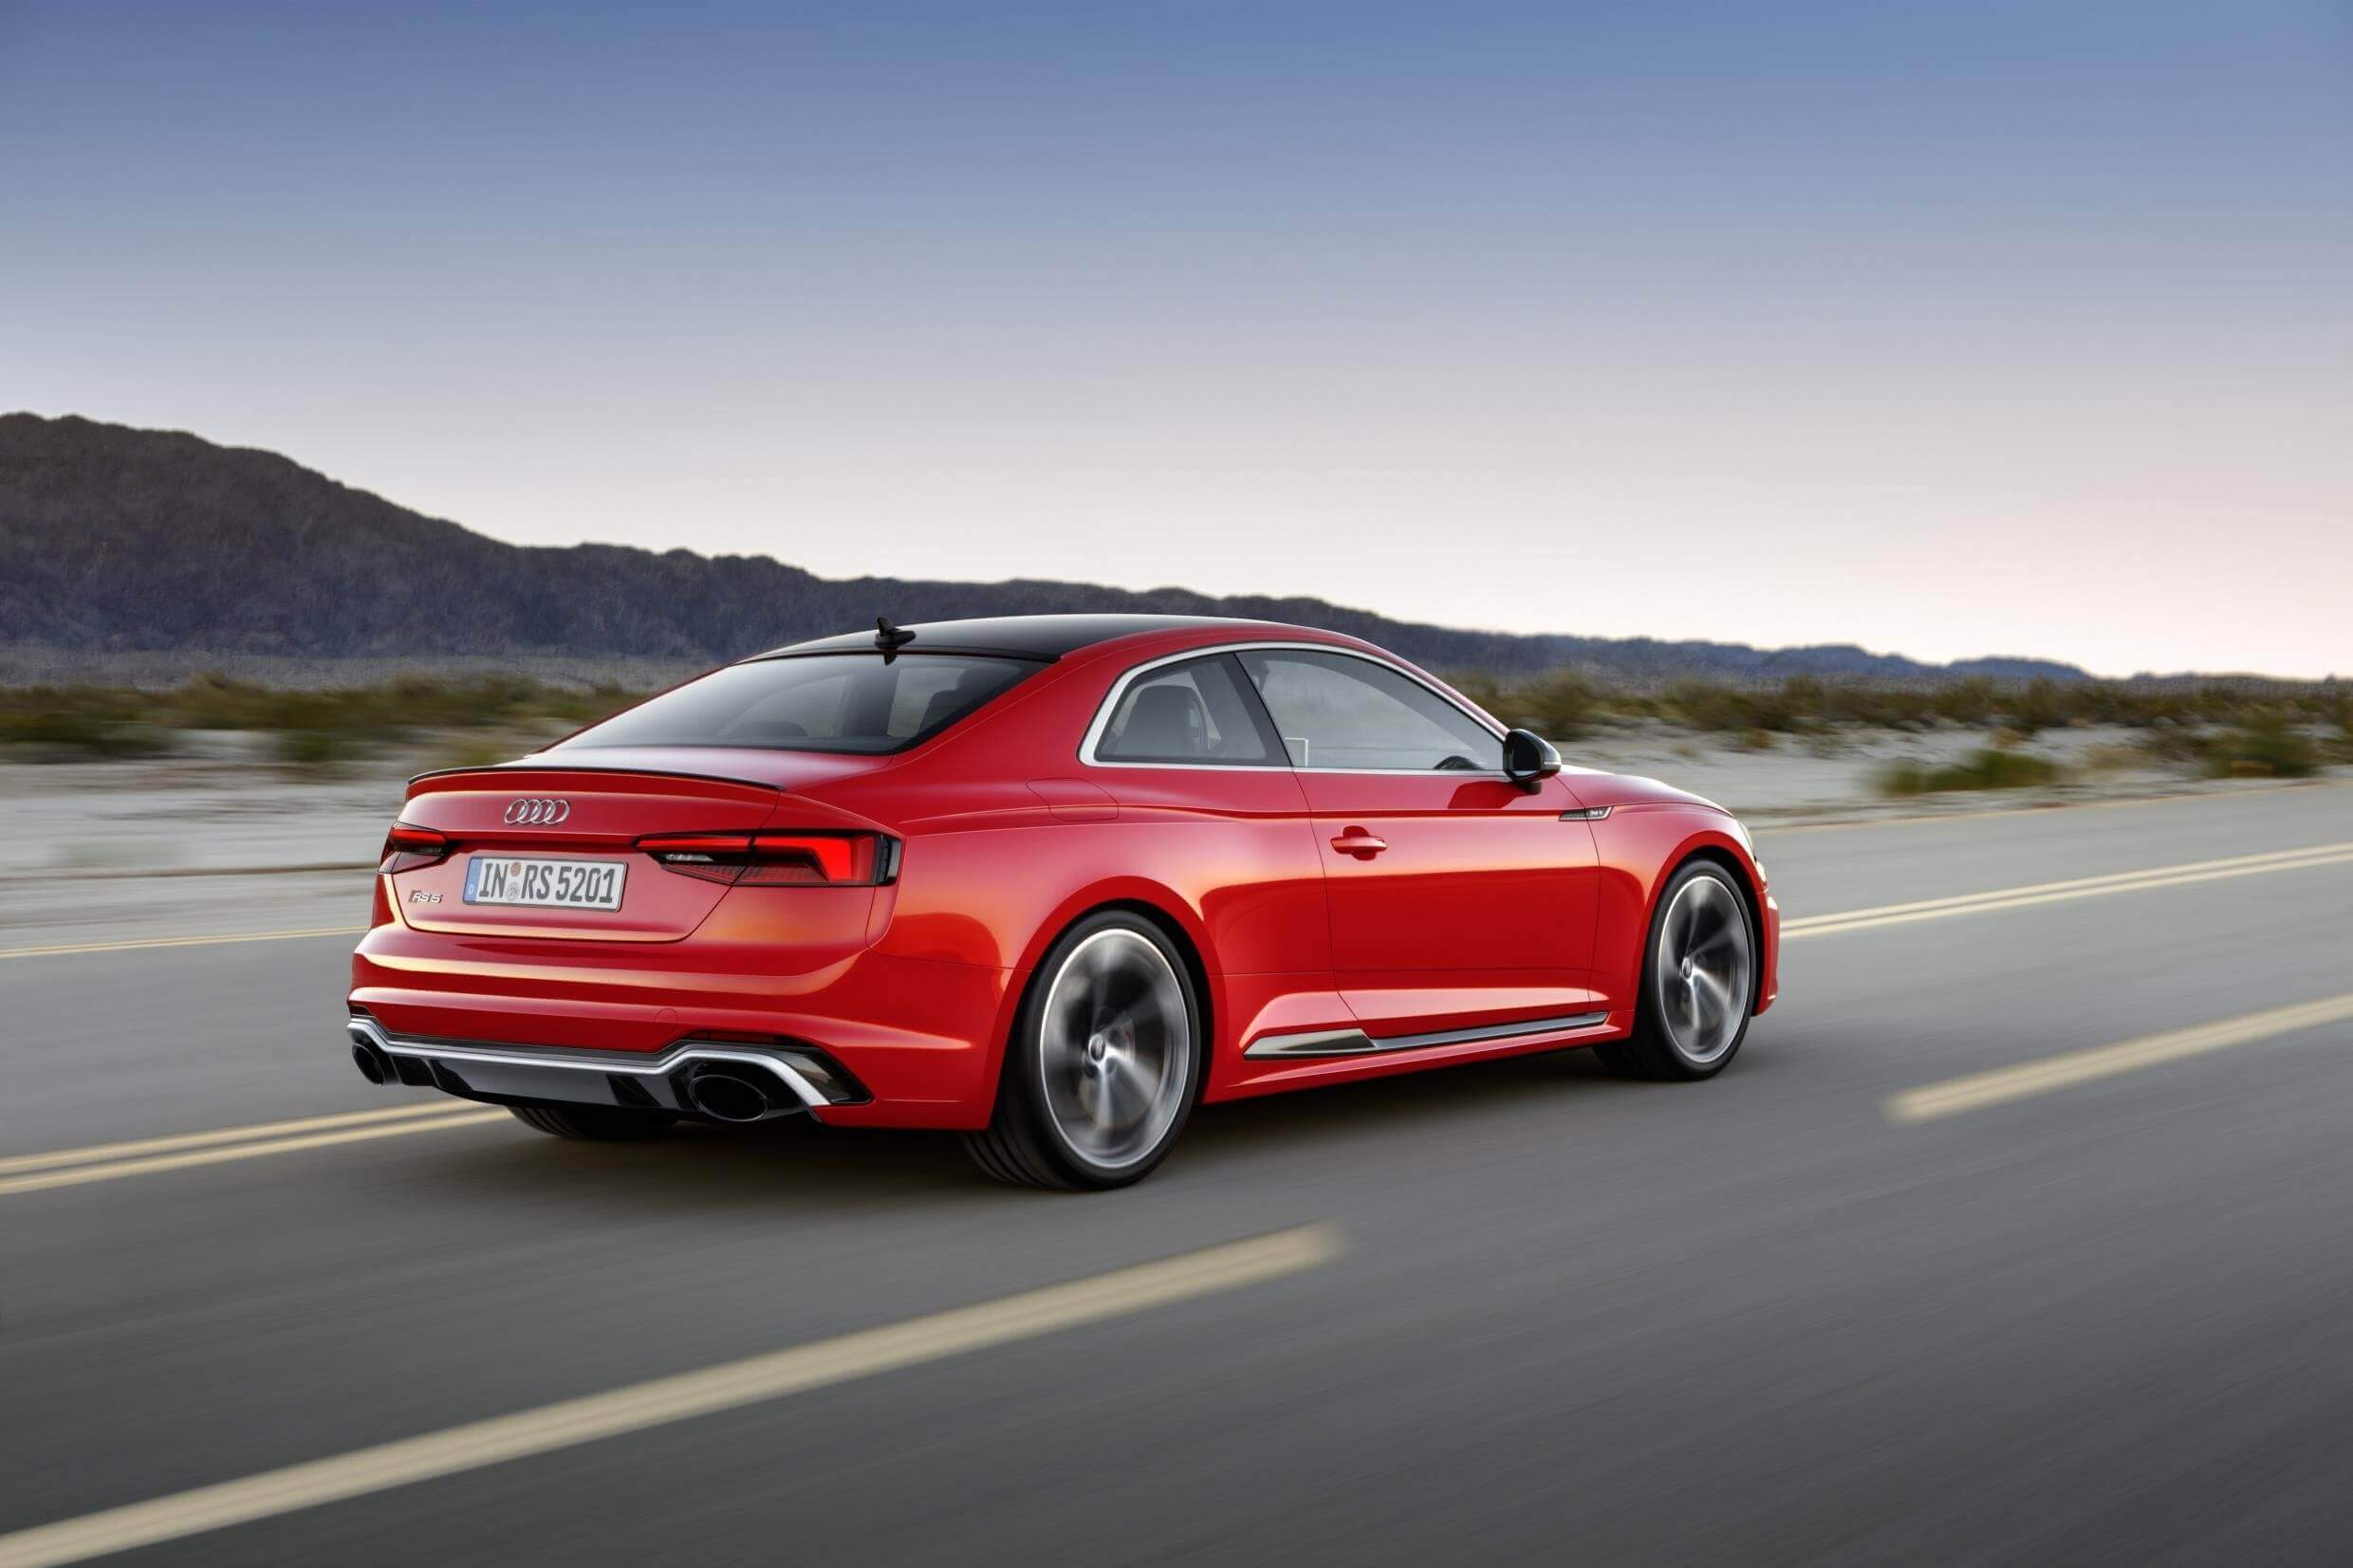 80 The 2020 Audi Rs5 Price and Review